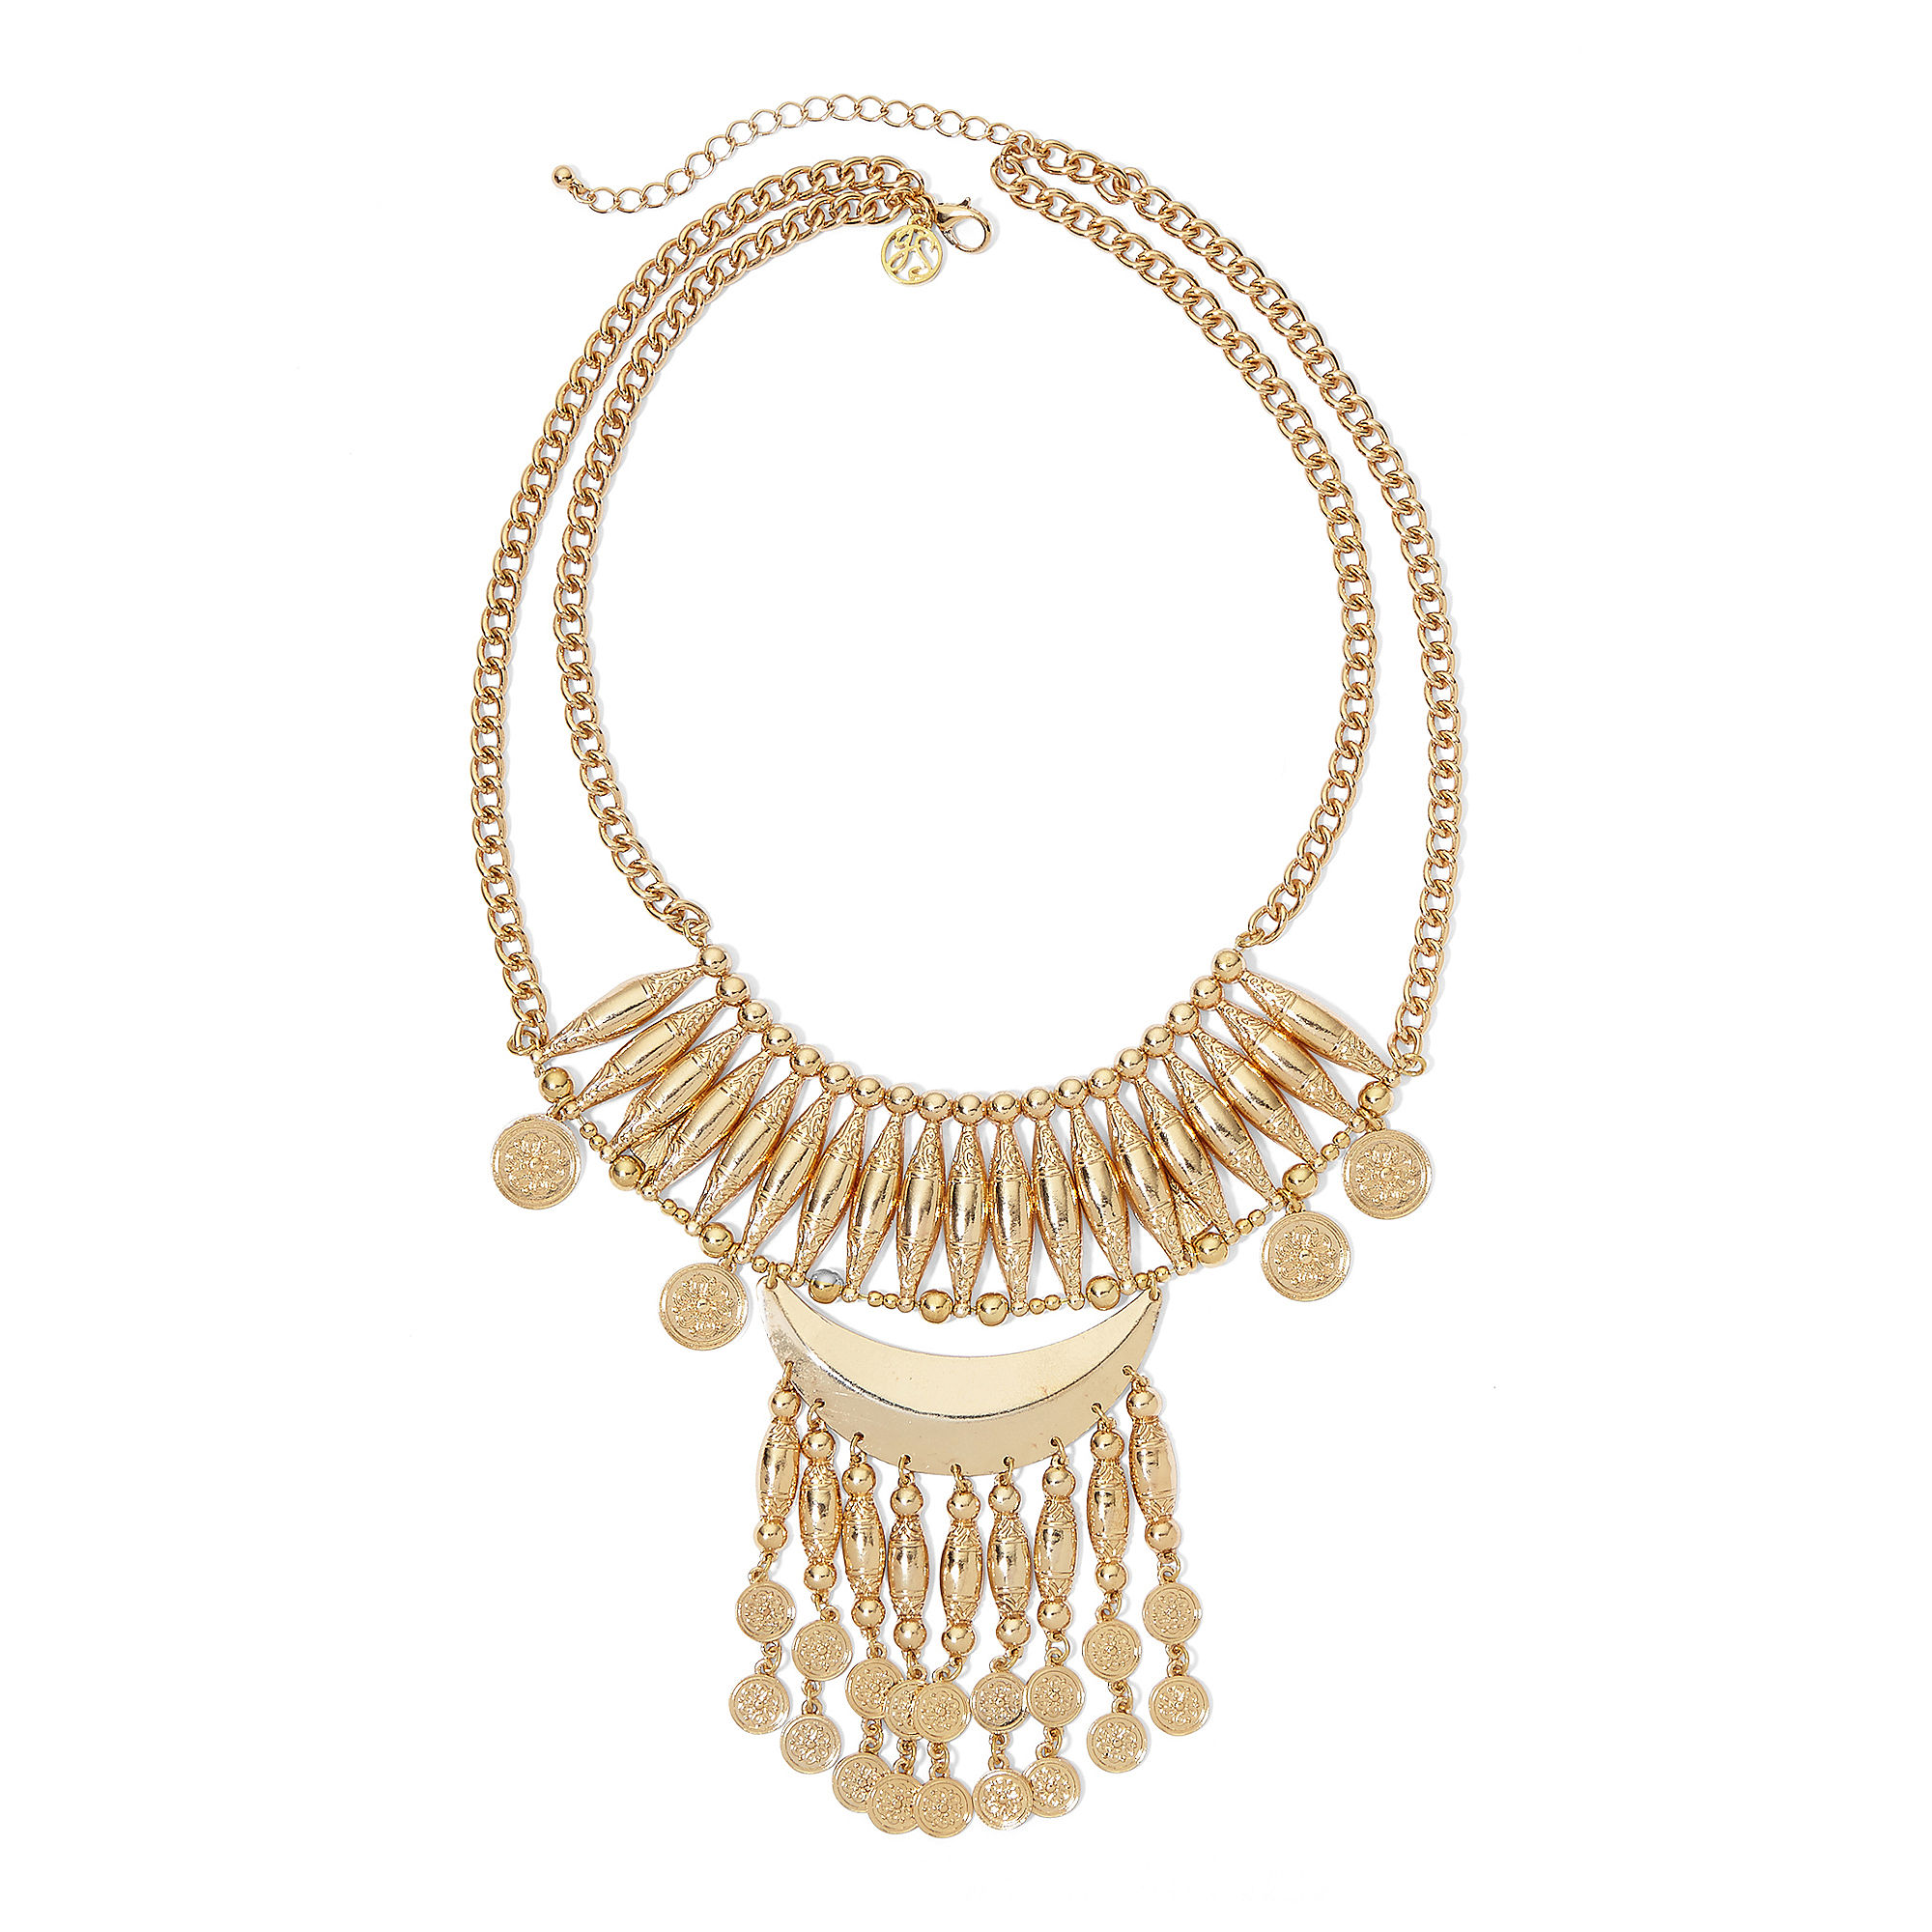 Gemma Simone™ Odalis Molten Gold-Tone Statement Necklace